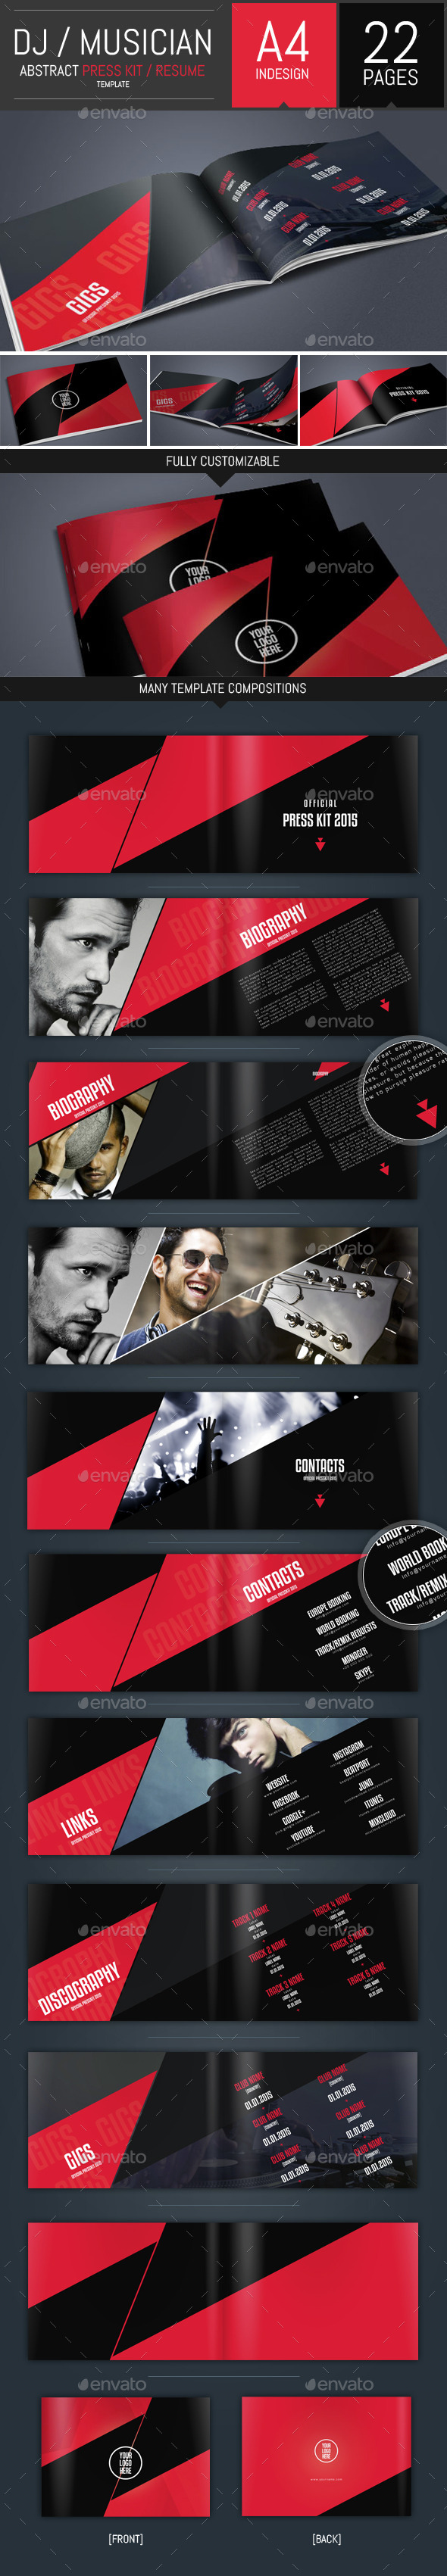 GraphicRiver Dj and Musician Press Kit Resume Template 10117222